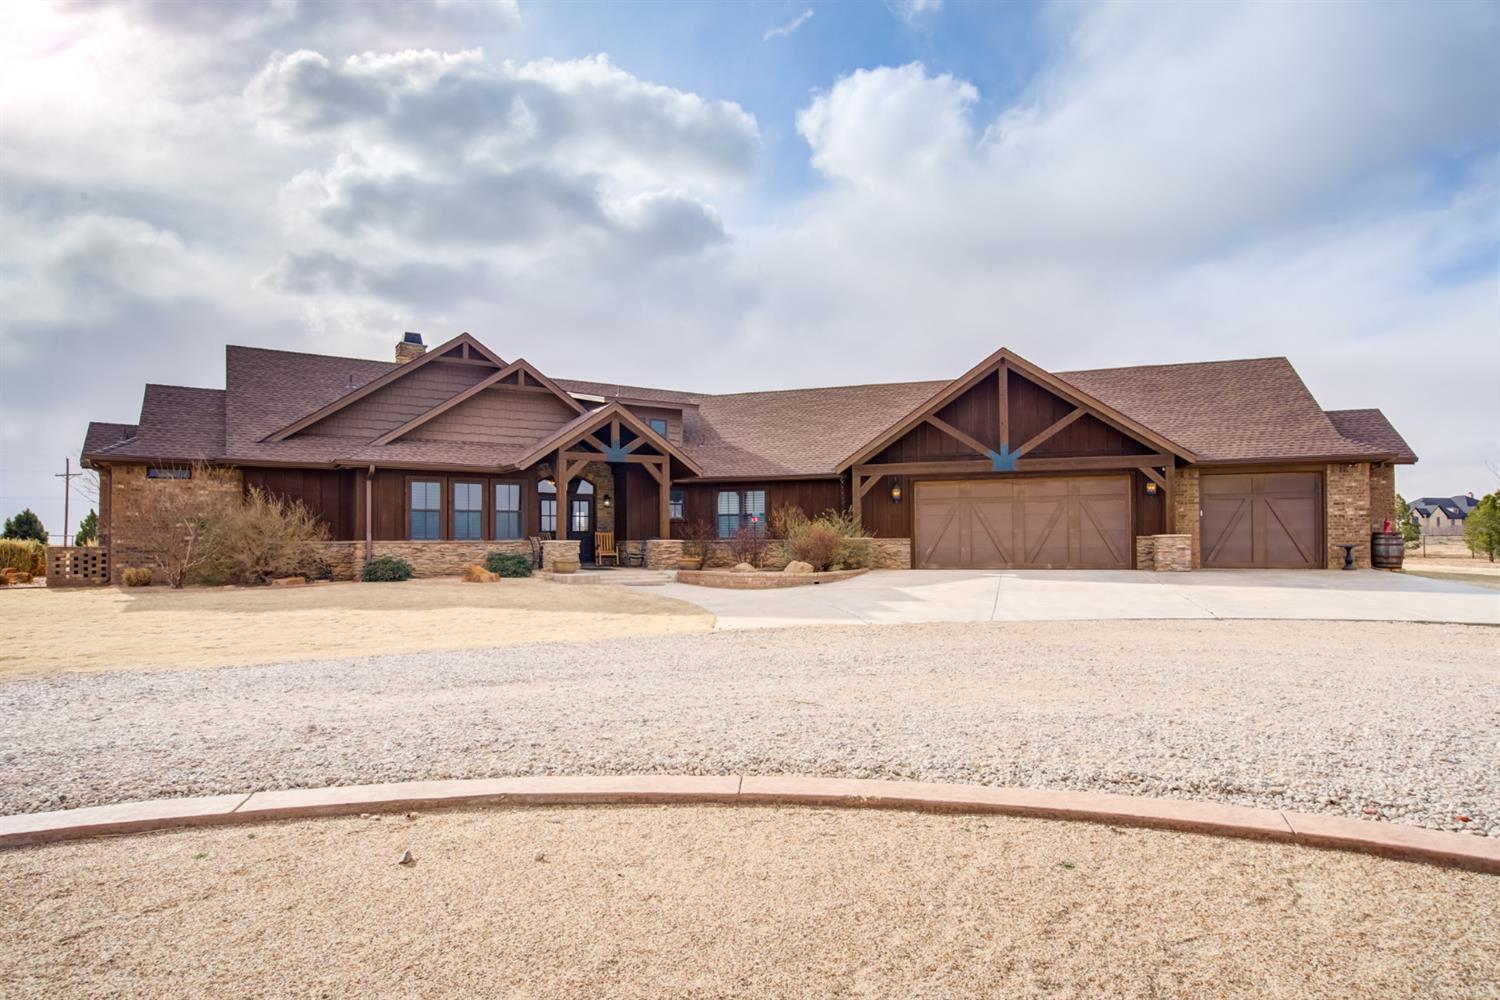 Shallowater Country Estate complete with all the amenities you can imagine. Beautiful Rustic Modern Ranch design sitting on 22 acres and loaded with amazing beam & truss features complemented by beautiful ledge rock. Woodwork detail is amazing in this open plan with 4 bedrooms, 4 bath, basement, office, and a supersized 3 car garage. The master retreat will not disappoint and the views form all rooms are spectacular. Step outdoors to the amazing patios and enjoy the West Texas sunsets. The entire acreage is fenced w/ pipe and cable. The barn/shop is designed w/plenty of storage for equipment, 2 overhead doors, large work space and access for working animals in the adjacent pens. As a bonus it has an apartment which is air conditioned and has full bath. The garden also hits the mark with a green house, elevated beds, a chicken coop, and a brick pizza oven. If country living and animals is your cup of tea then you have found your paradise and located in the popular Shallowater ISD.